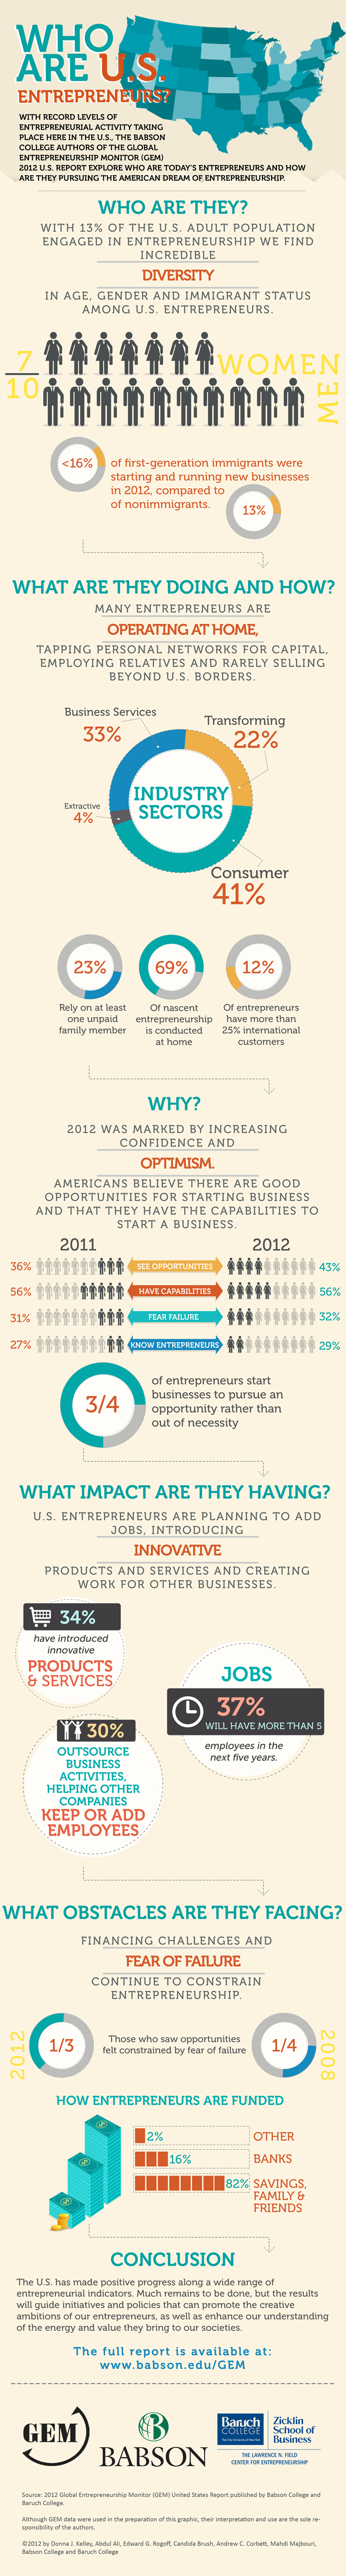 Entrepreneur Statistics and Demographics 33 Fascinating Entrepreneur Statistics and Demographics